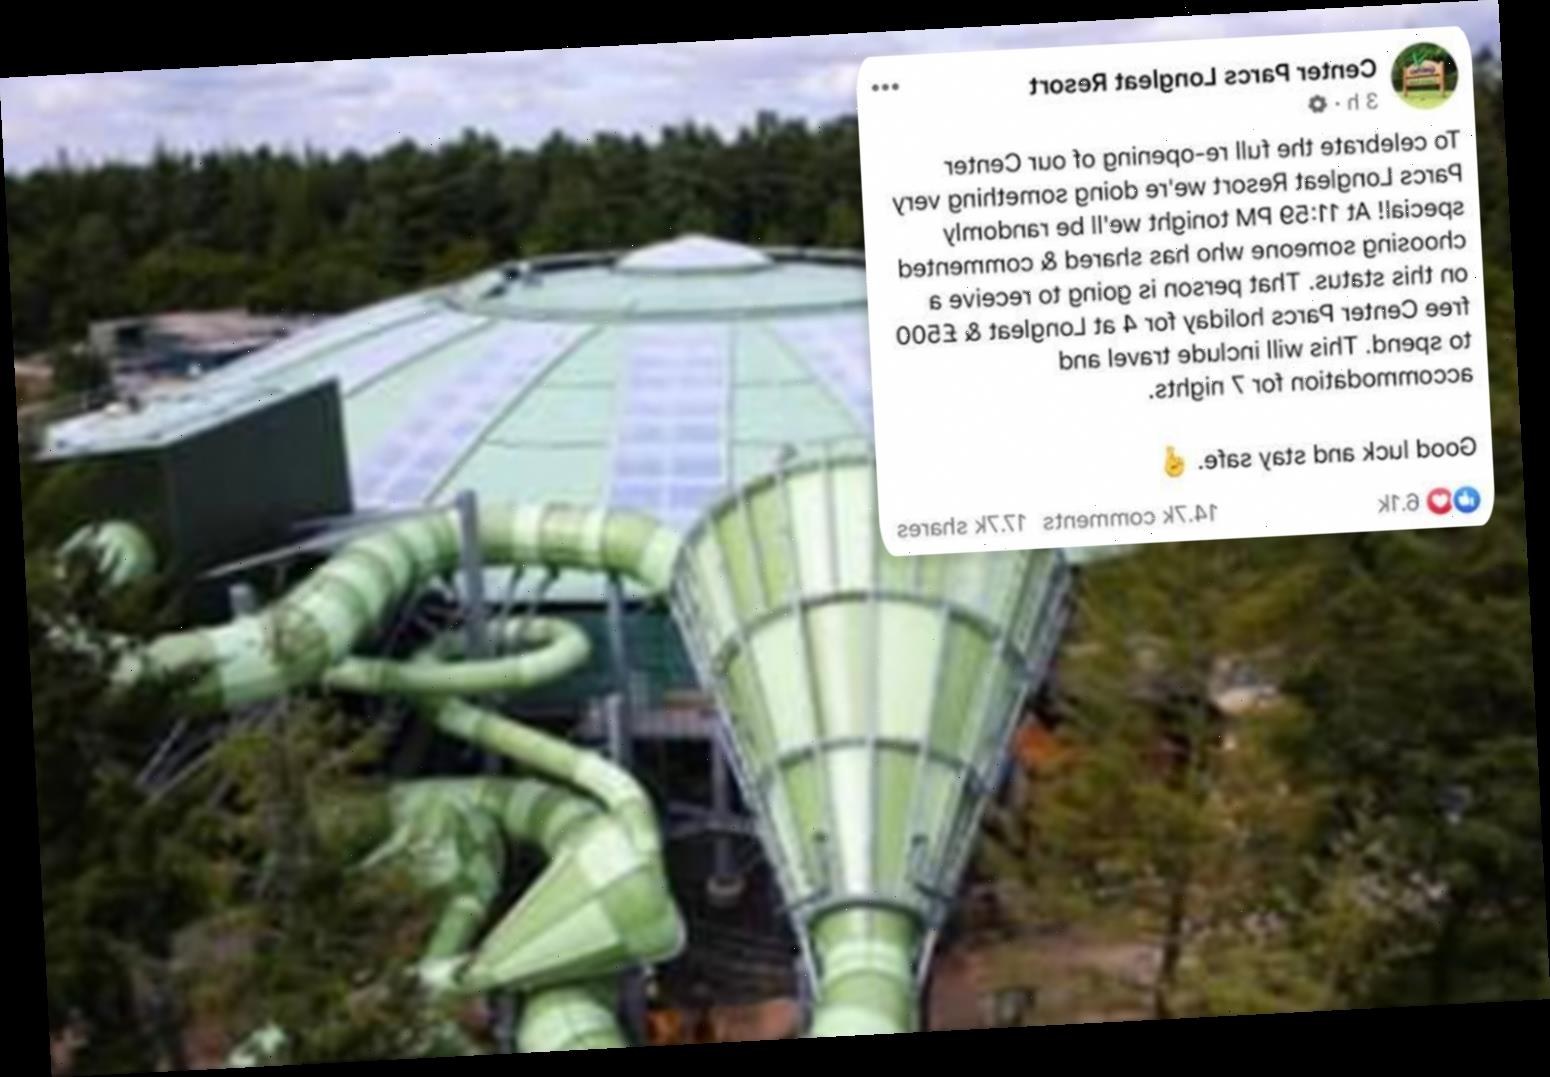 Warning over Center Parcs fake Facebook page scam that has tricked 17,000 people